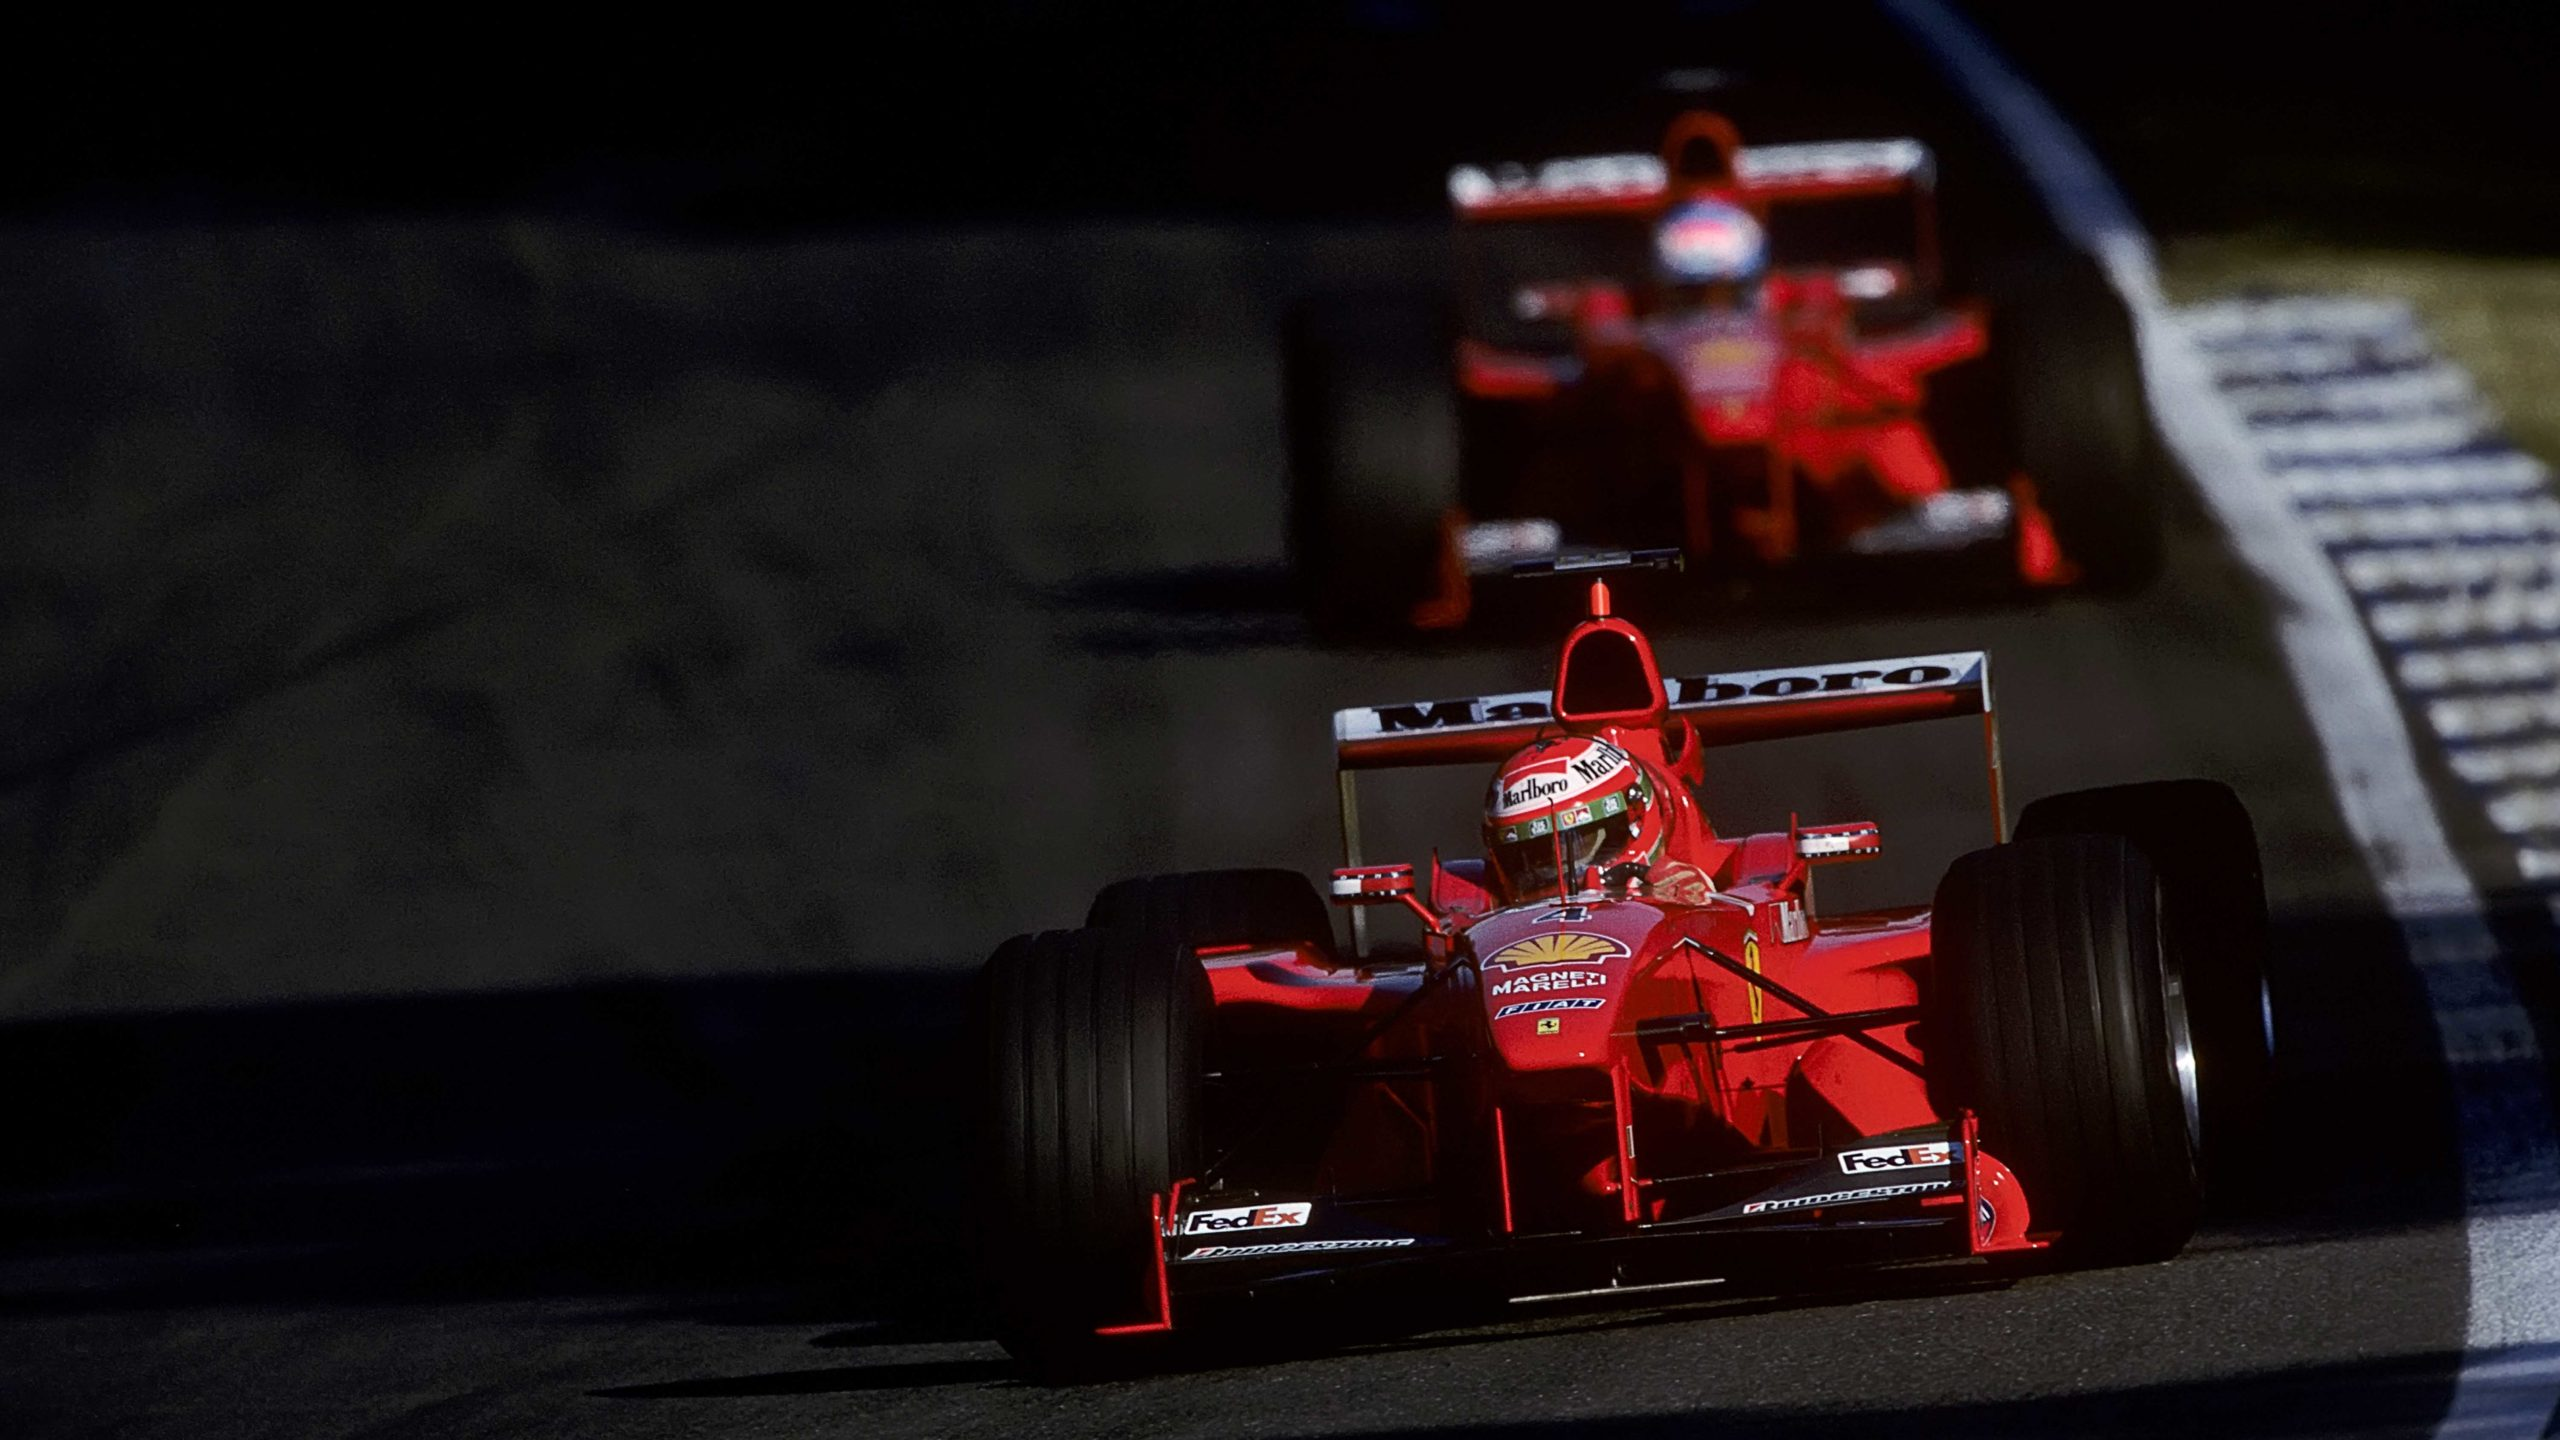 Eddie Irvine leads Mika Salo in the 1999 F1 German Grand Prix at Hockenheim